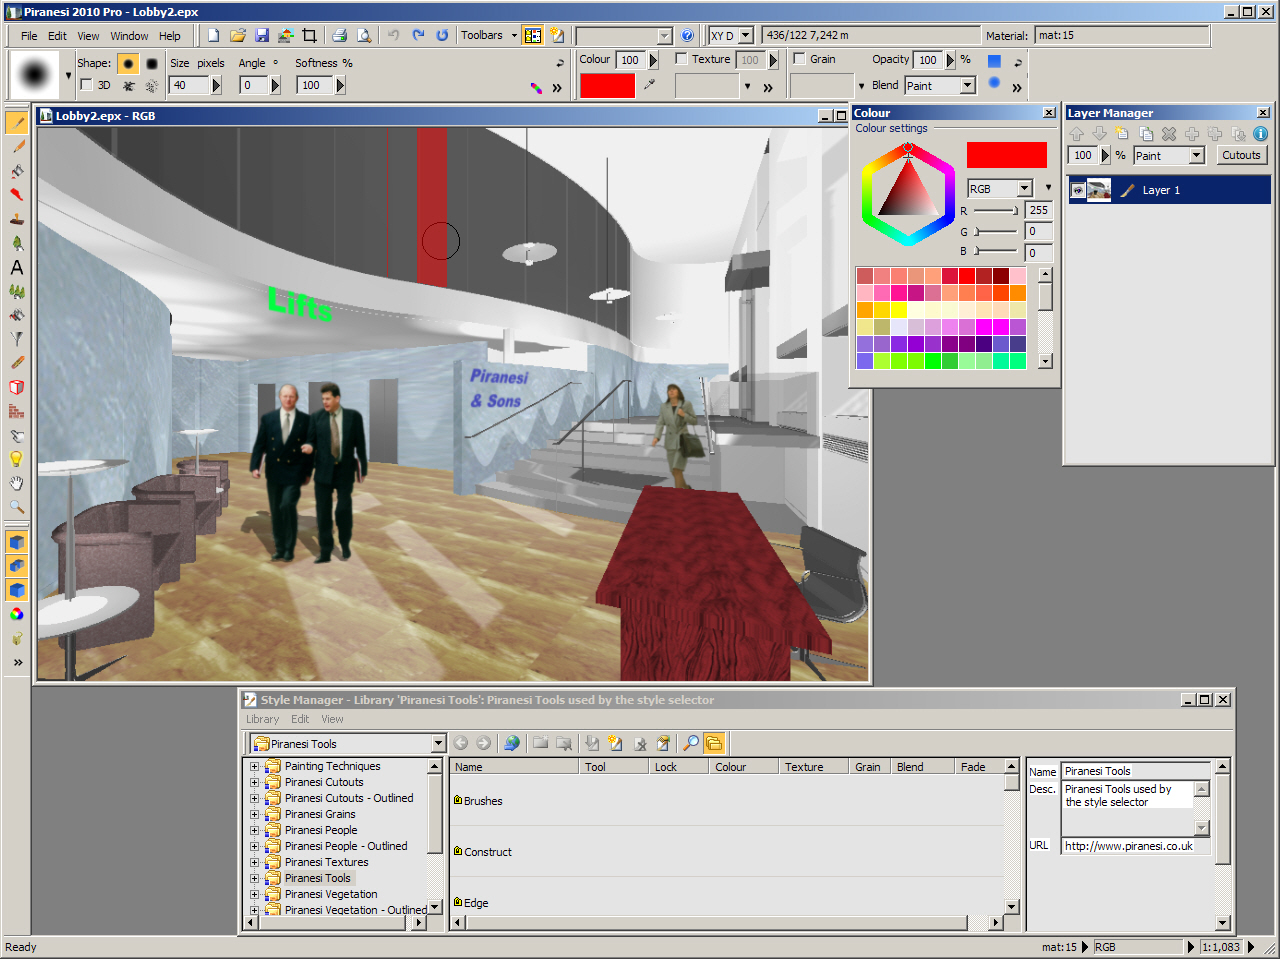 Working with Piranesi 2010 Pro v6.0.0.3672 full